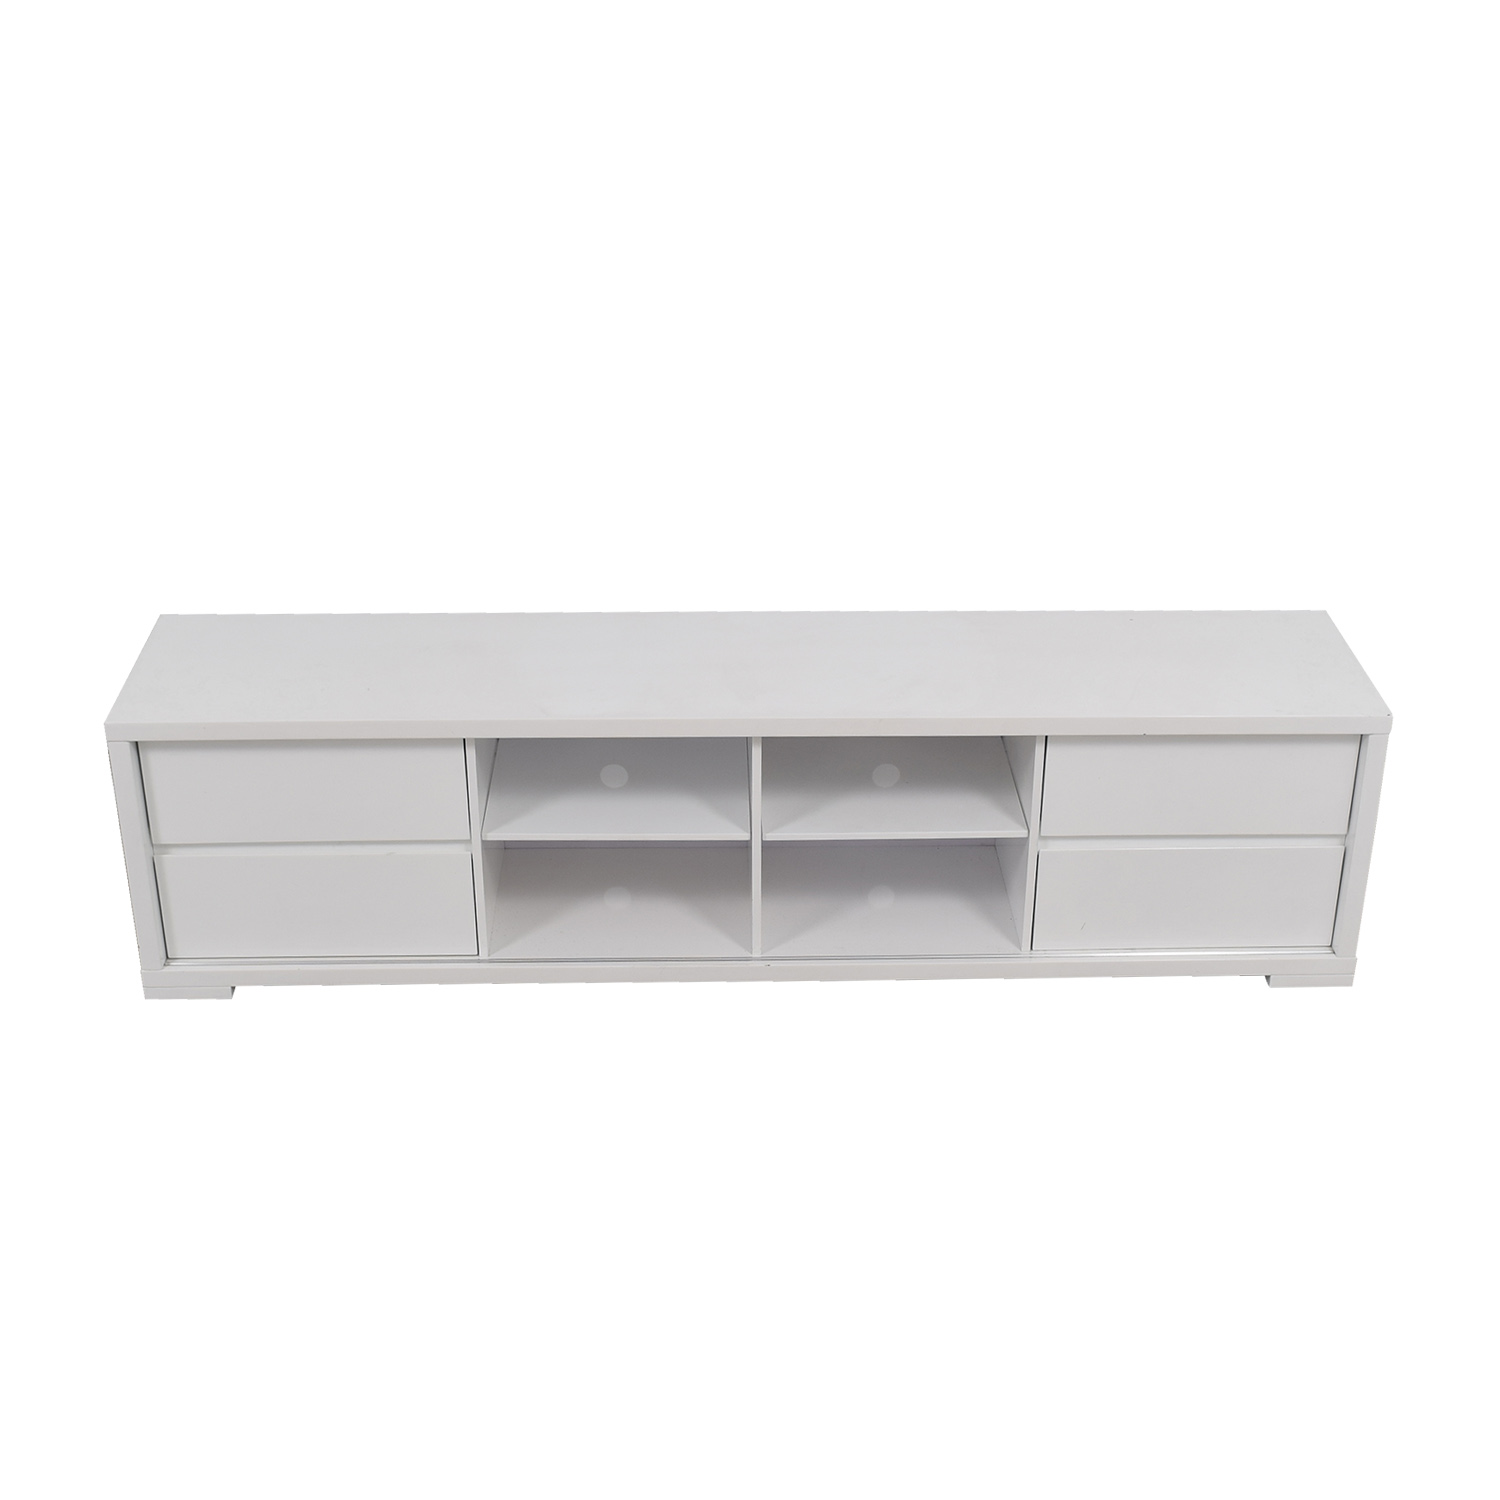 Casabianca Casabianca Life Collection White Media Unit second hand